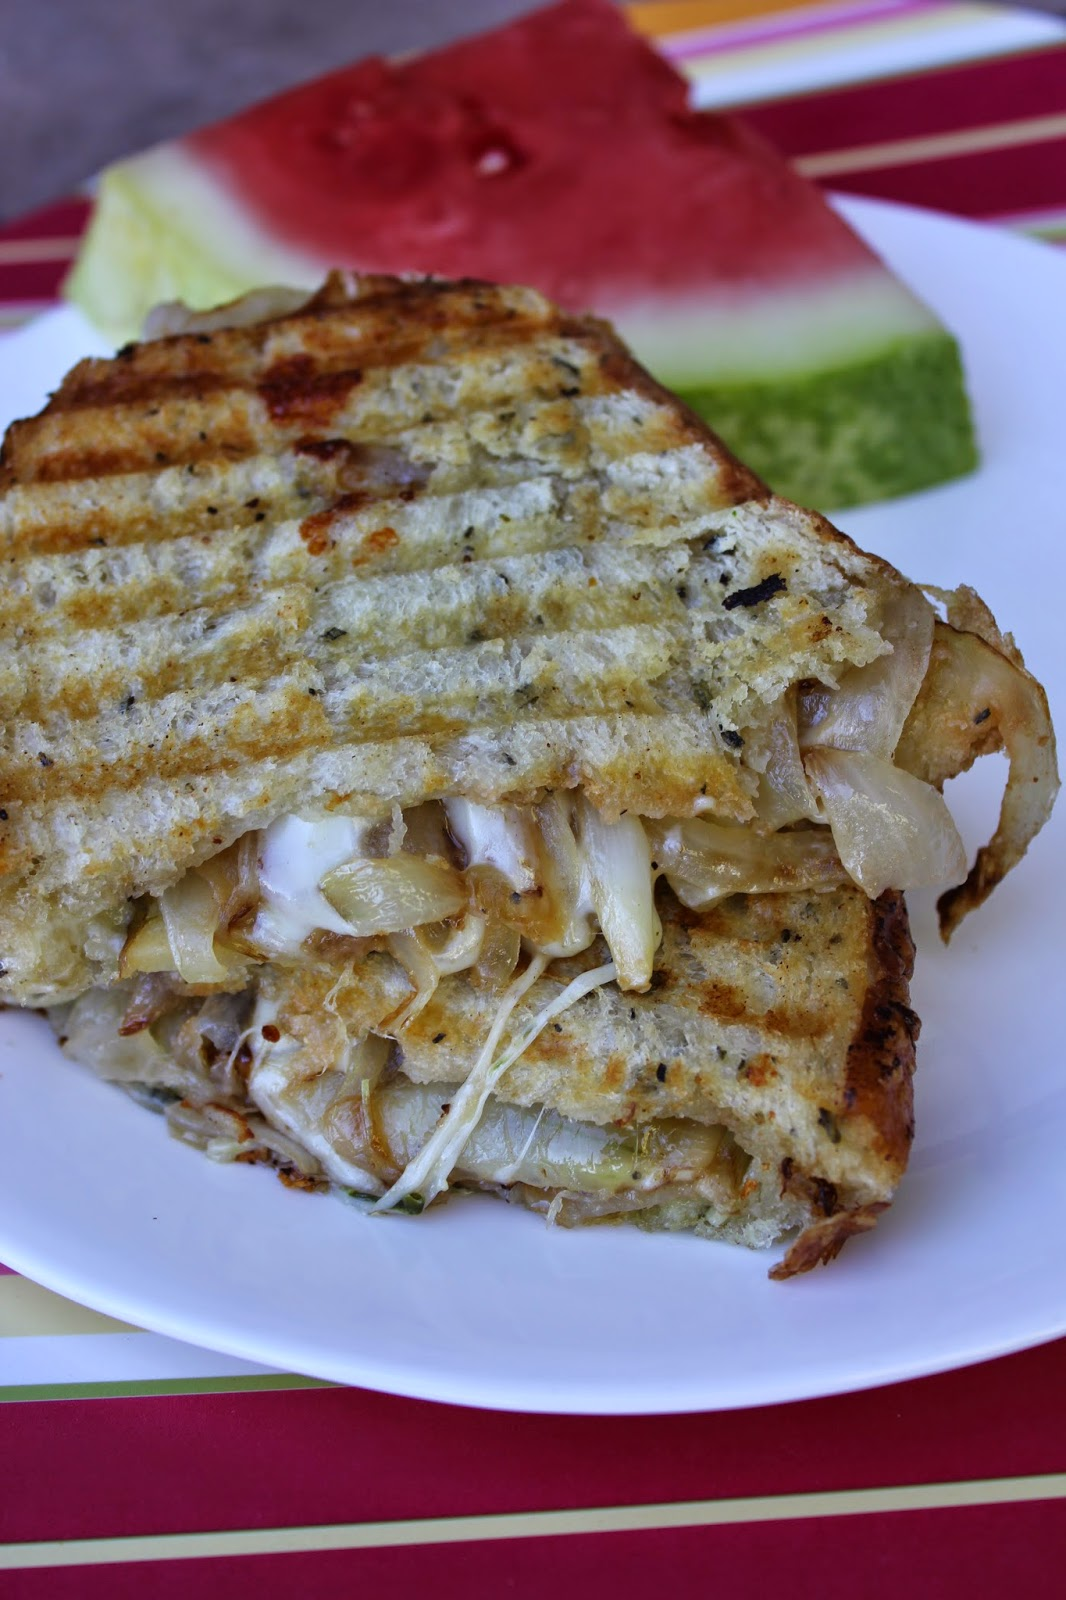 Recipe:  Sandwiches, Recipe:  Vegetarian, Easy Meal Ideas, Dinners under $5, Deals to Meals, Caramelized Onion Grilled Cheese Sandwich